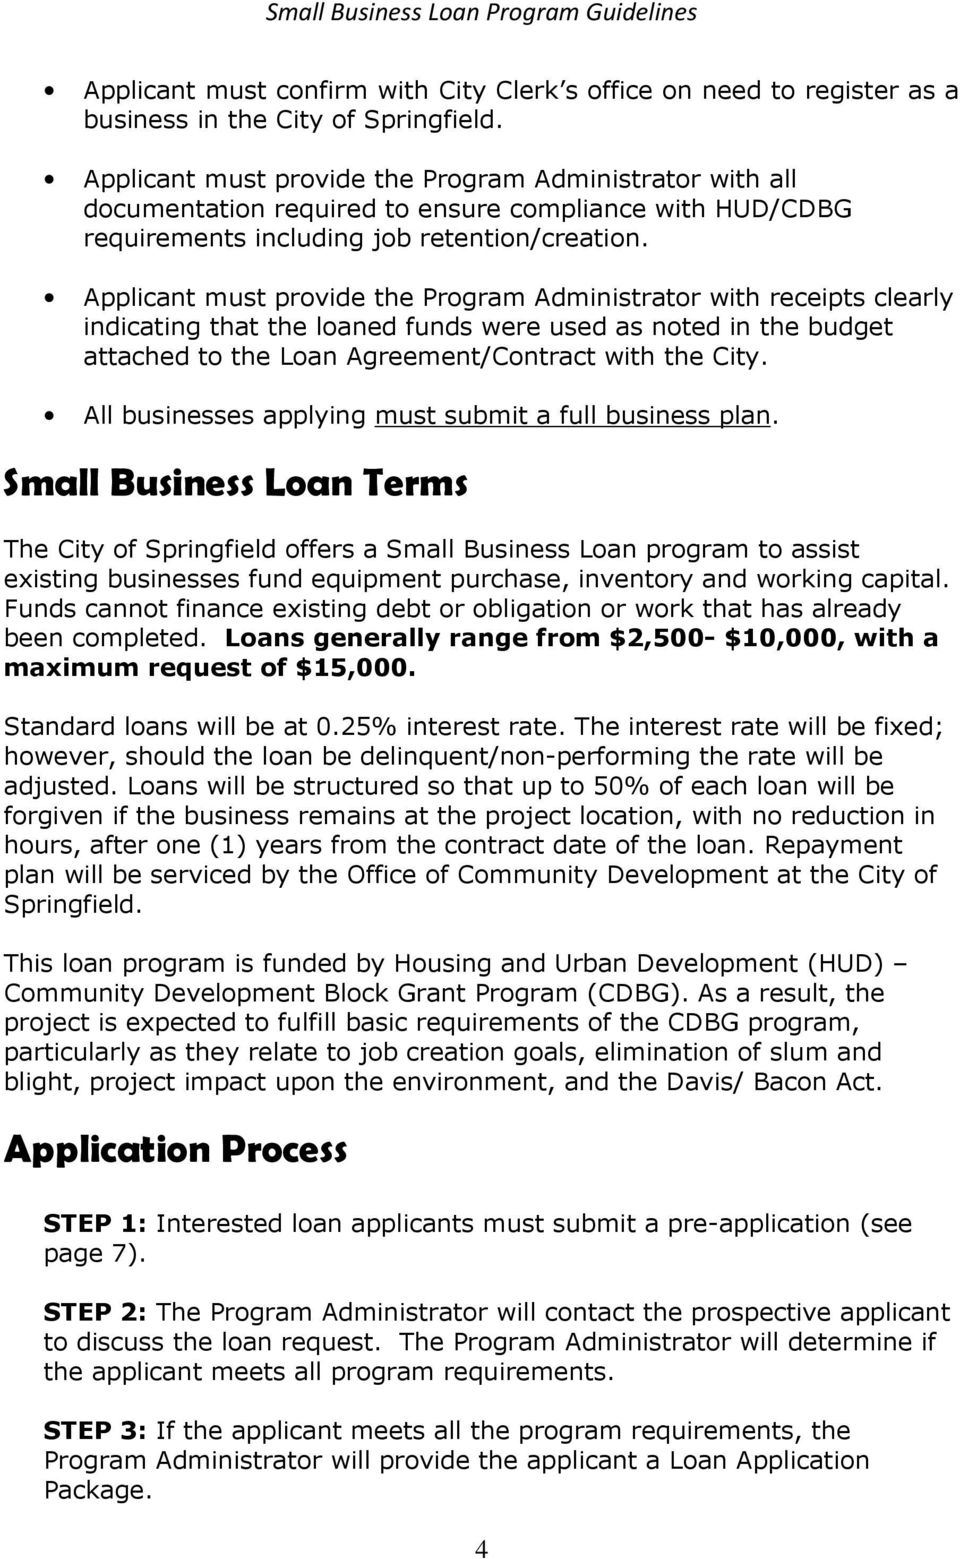 Applicant must provide the Program Administrator with receipts clearly indicating that the loaned funds were used as noted in the budget attached to the Loan Agreement/Contract with the City.